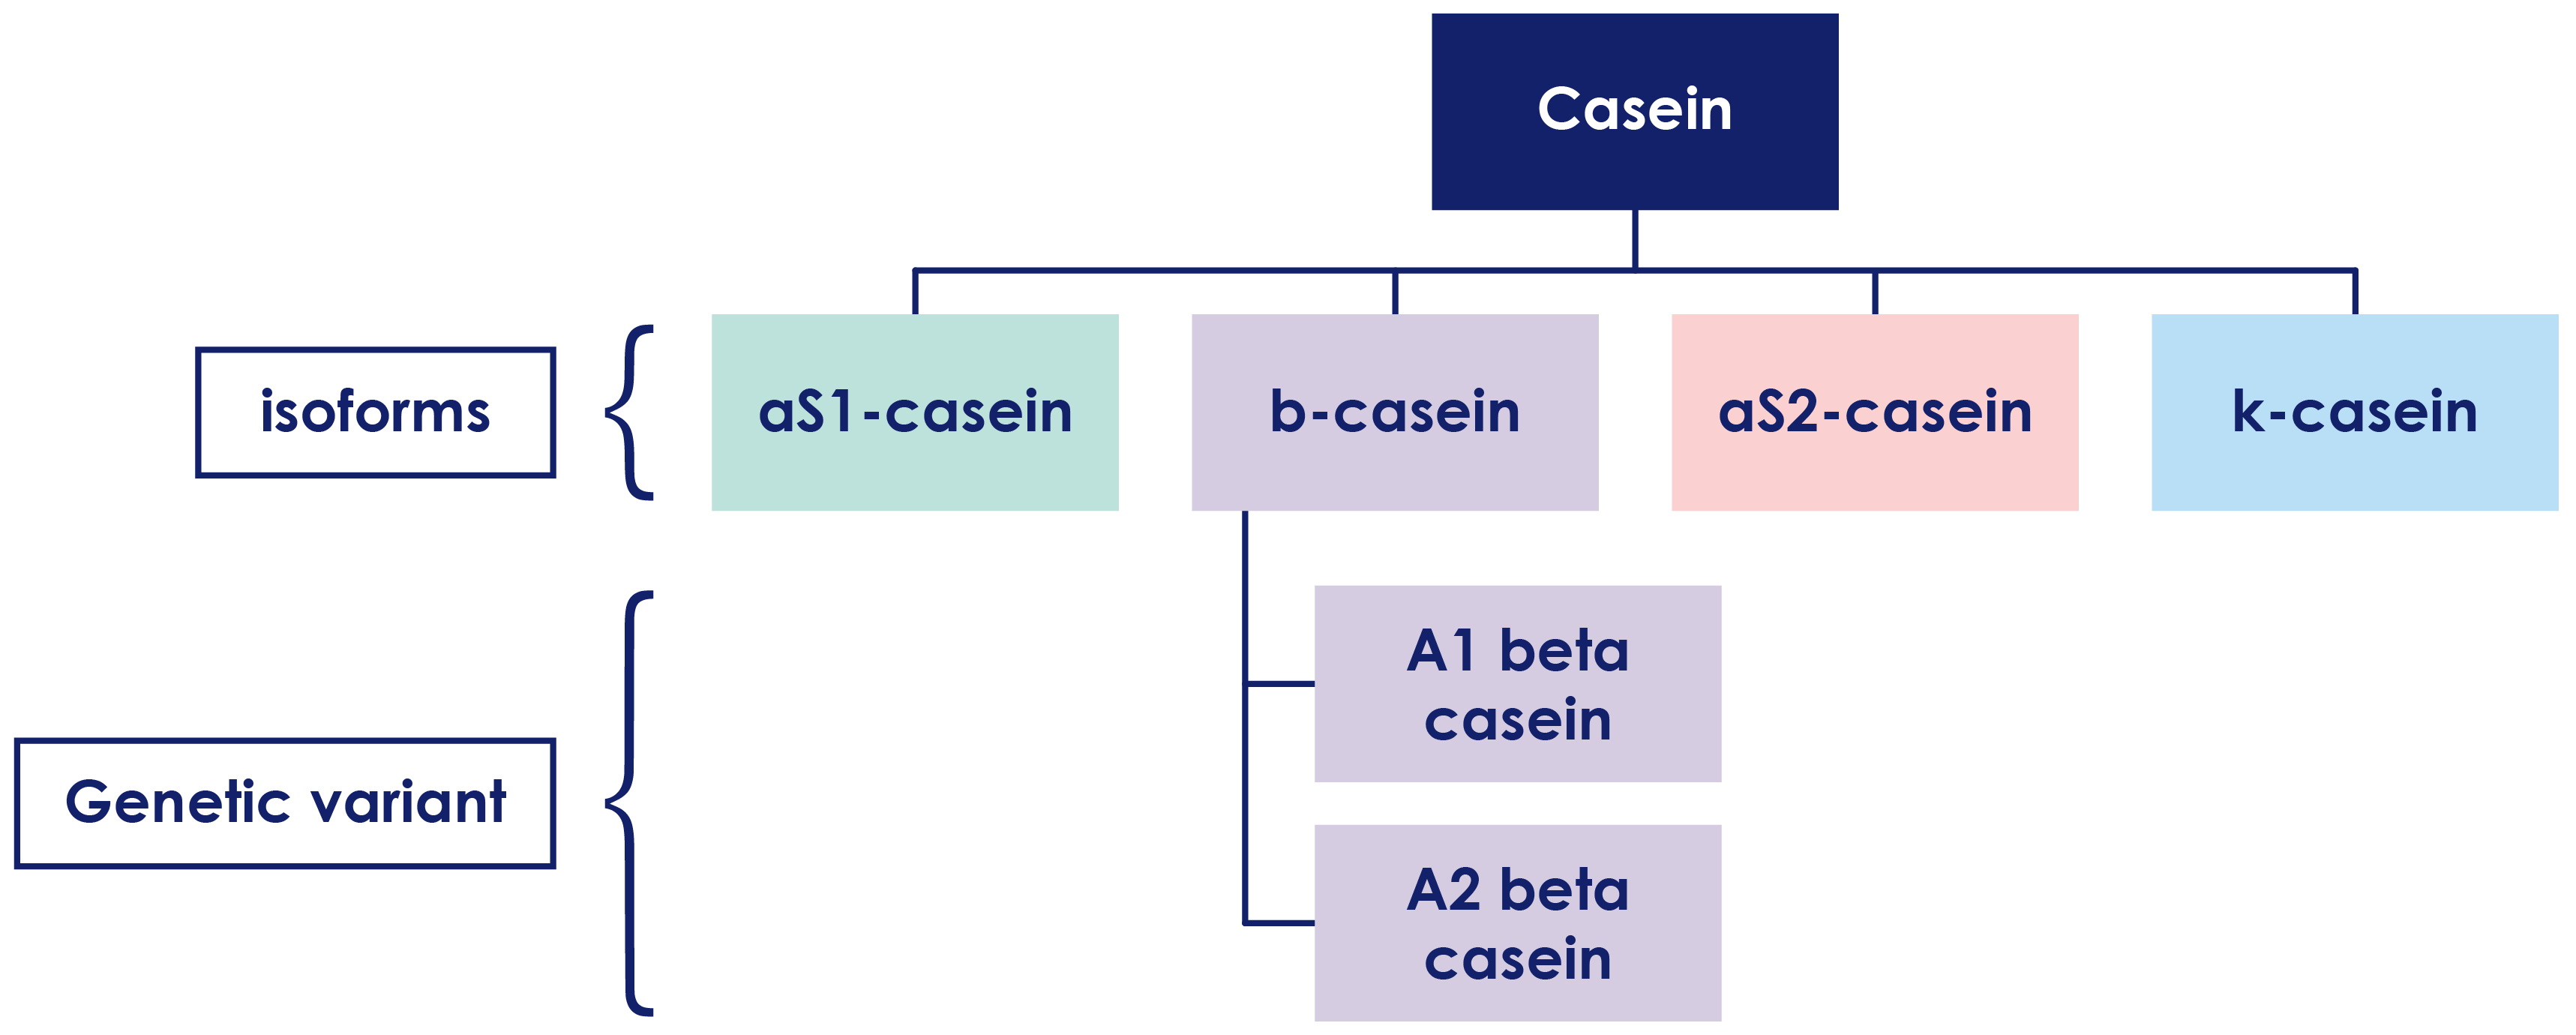 Casein composition chart with A1 and A2 beta casein